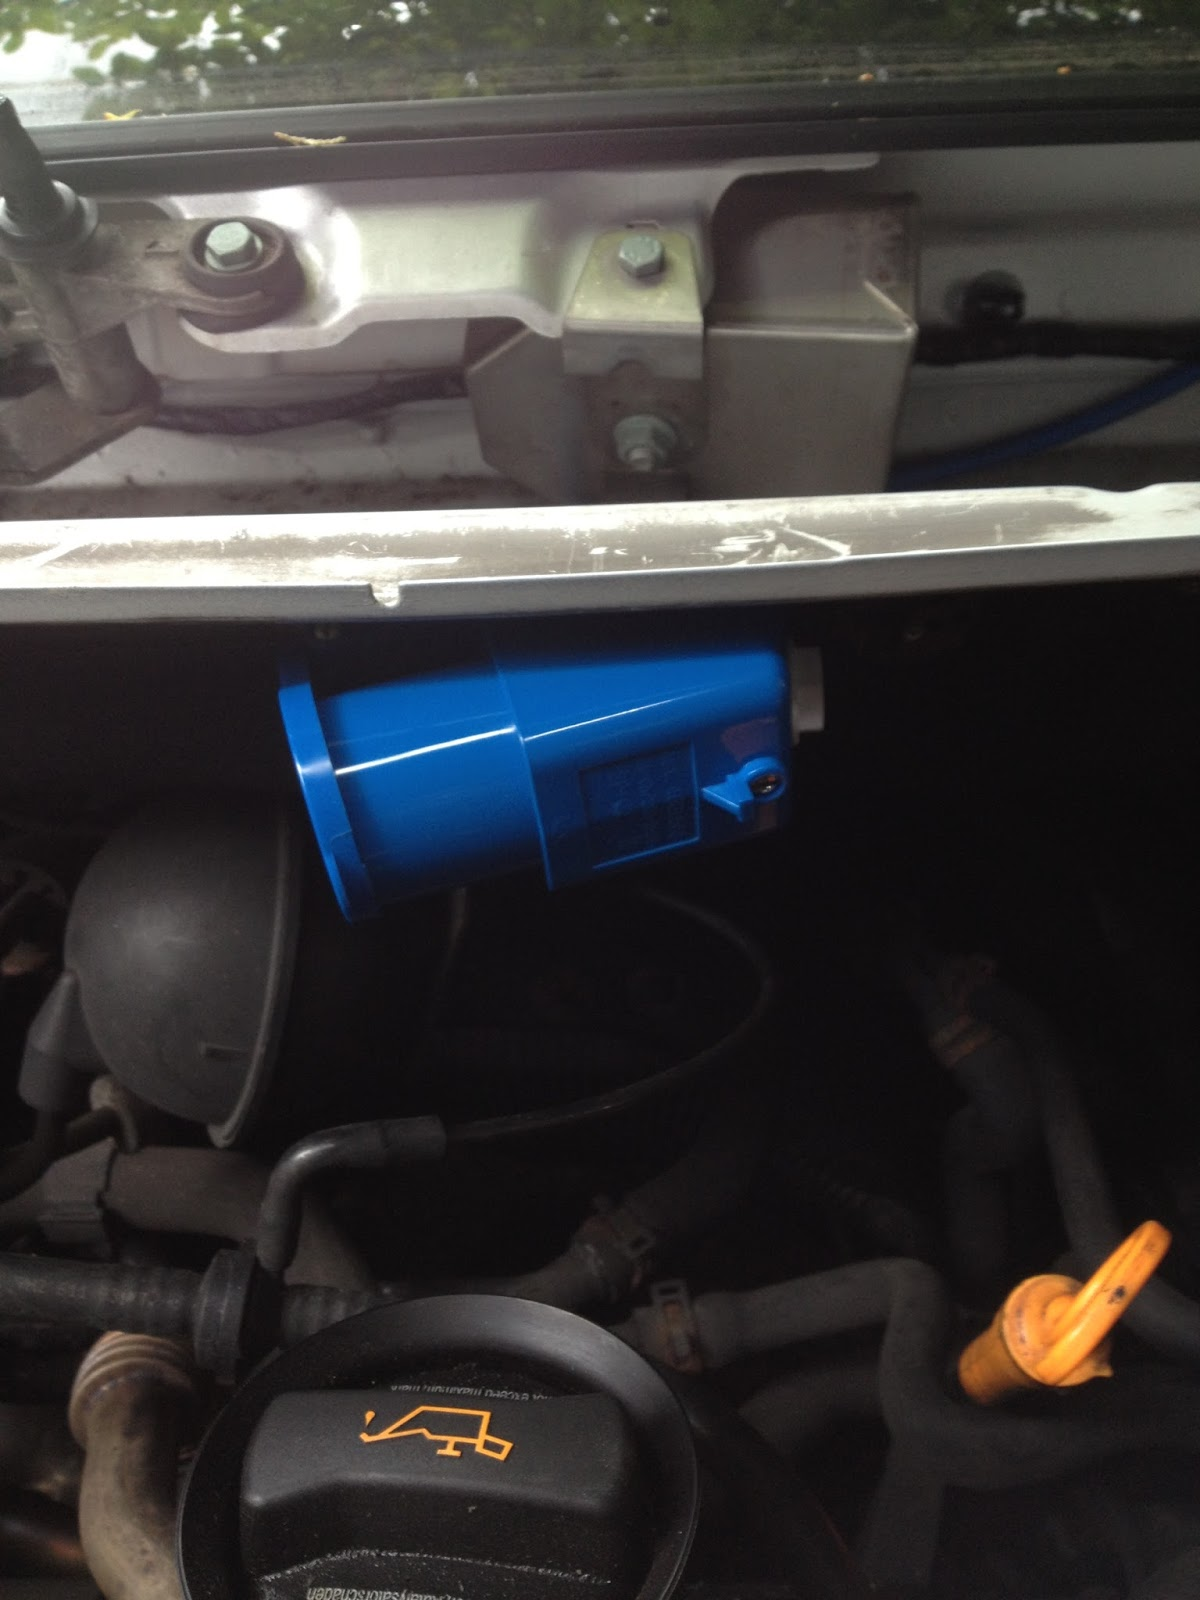 12v Split Charge And Mains Installation Vw T5 Van Conversion How To Put In A 240v Outlet